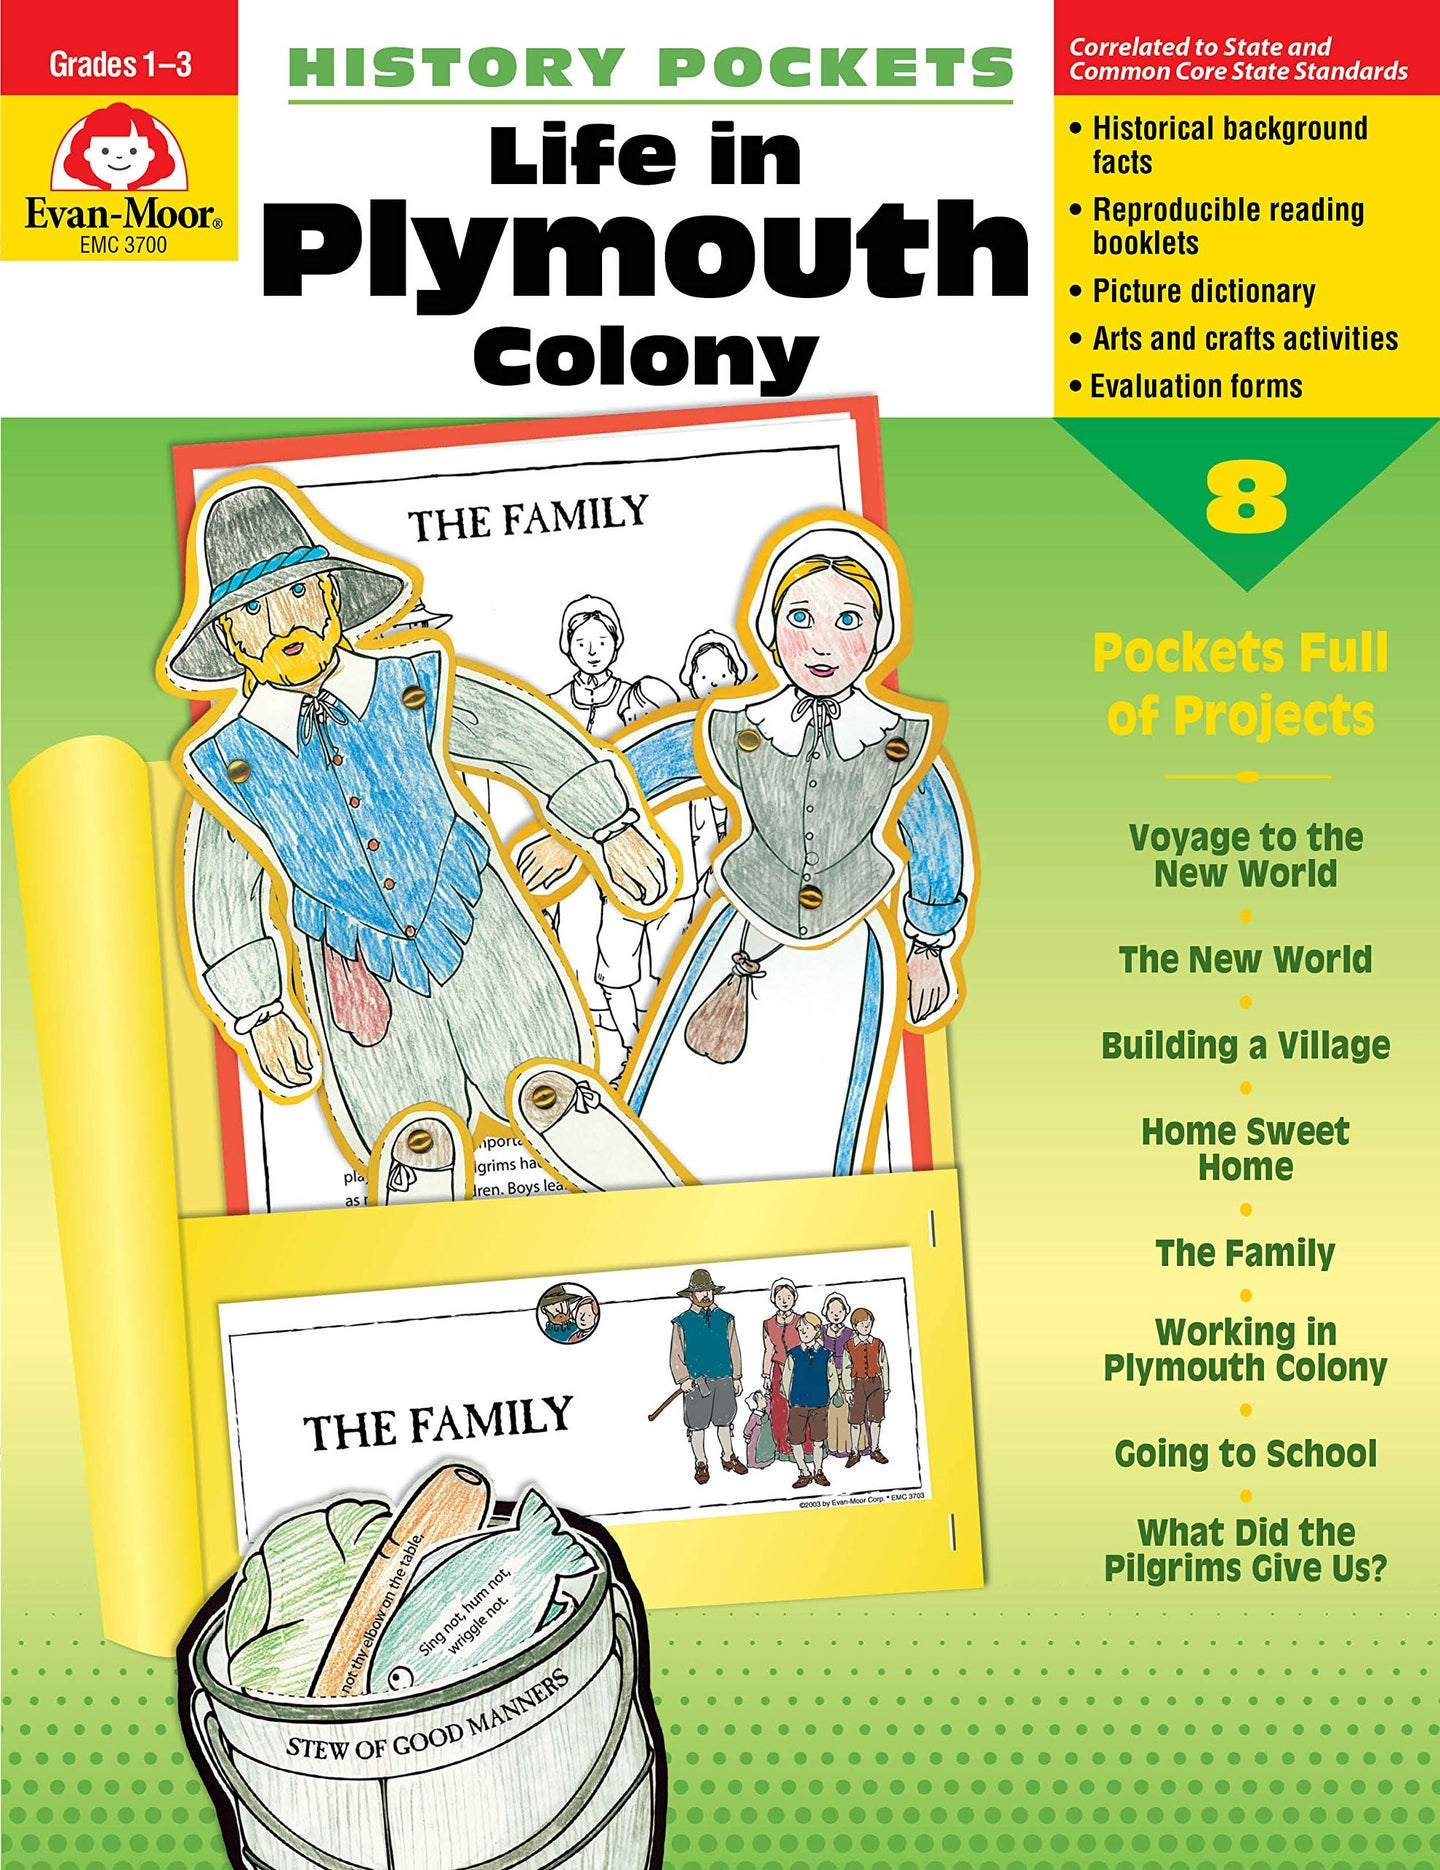 History Pockets: Life in Plymouth Colony, Grades 1-3 - (Used-Like New) - Little Green Schoolhouse Books